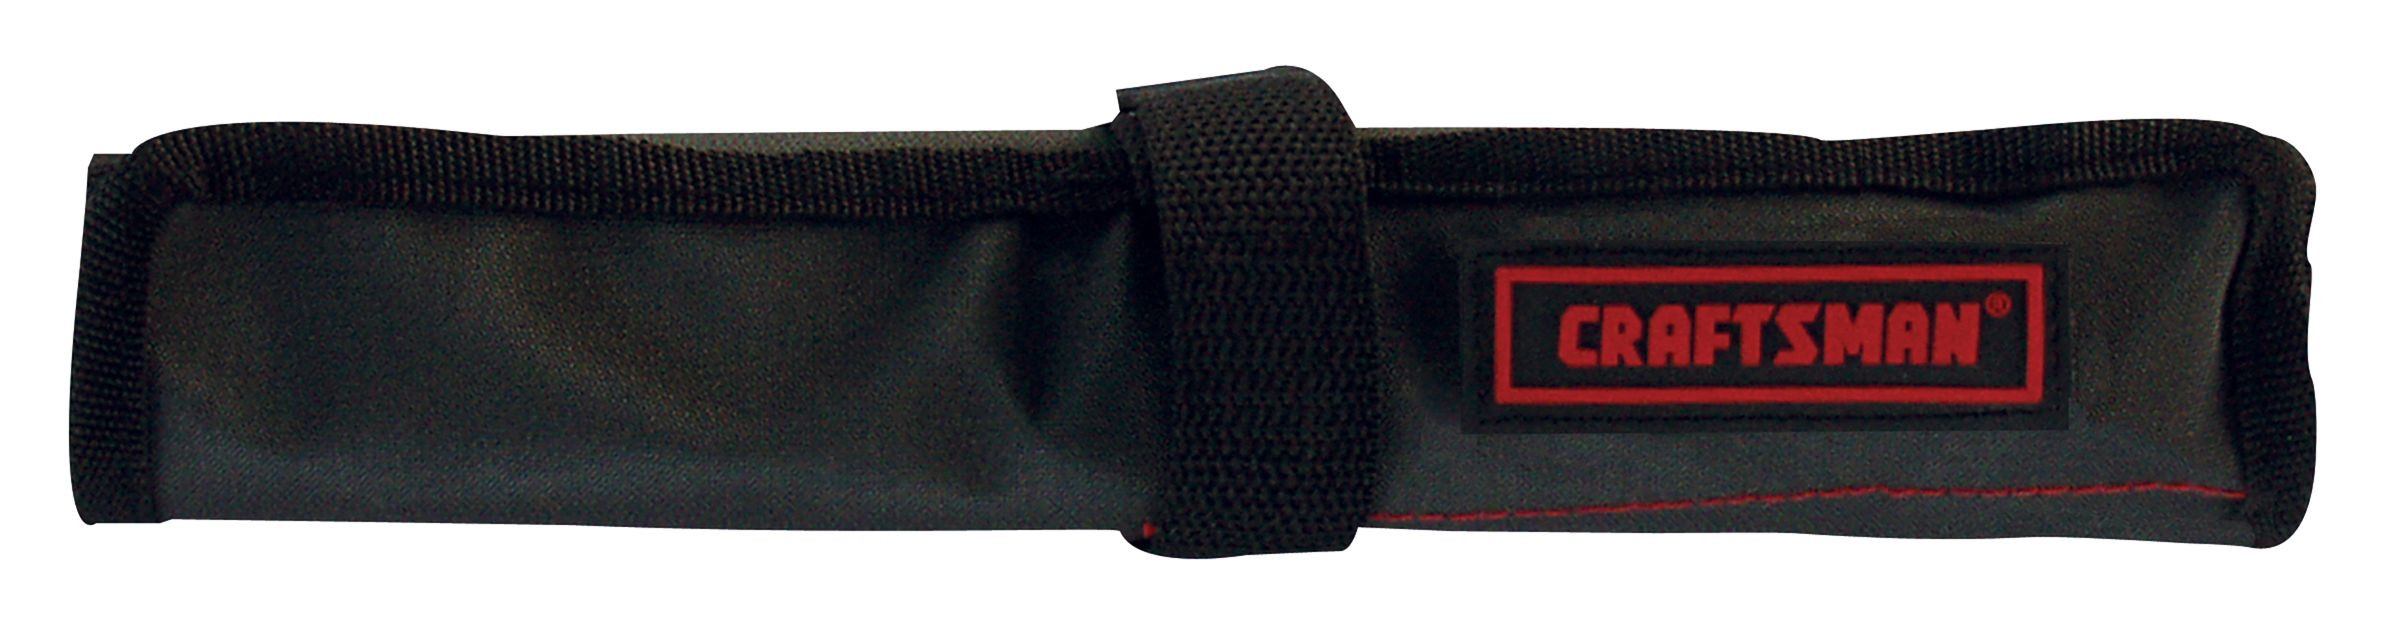 Craftsman Wrench/Tool Roll-Up Pouch